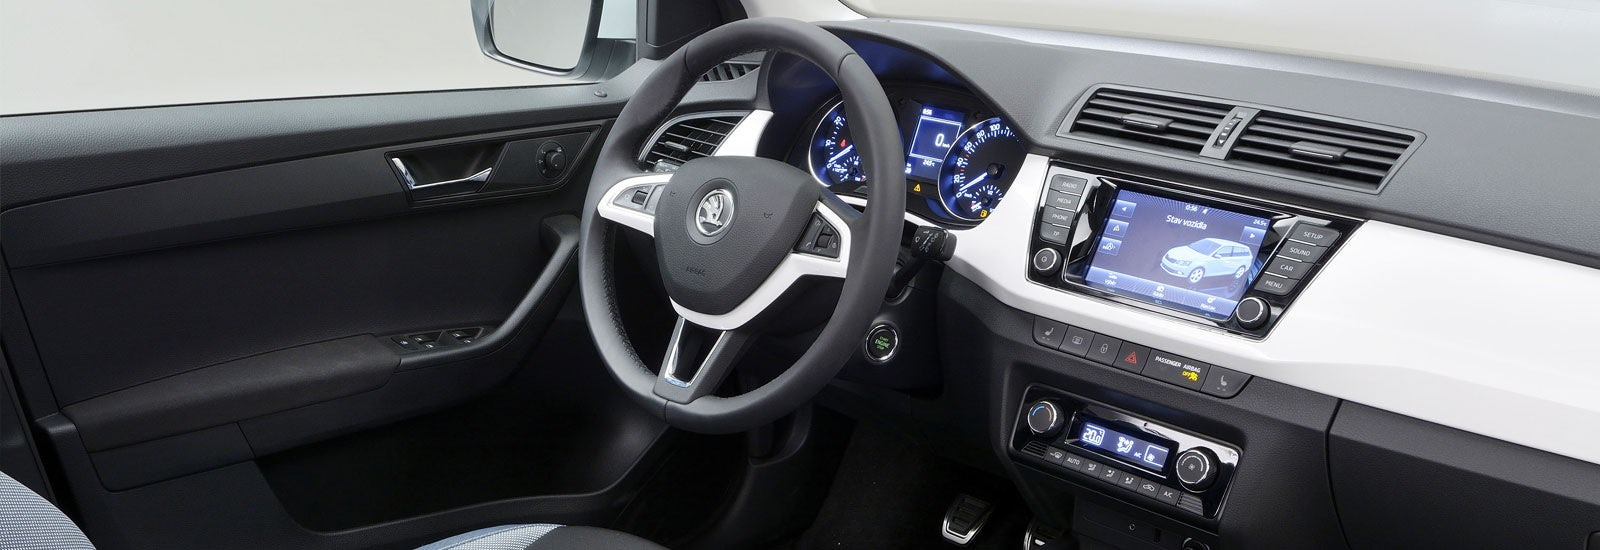 https://carwow-uk-wp-2.imgix.net/skoda-fabia-interior-dashboard-1.jpg?ixlib=rb-1.1.0&fit=crop&w=1600&h=&q=60&cs=tinysrgb&auto=format